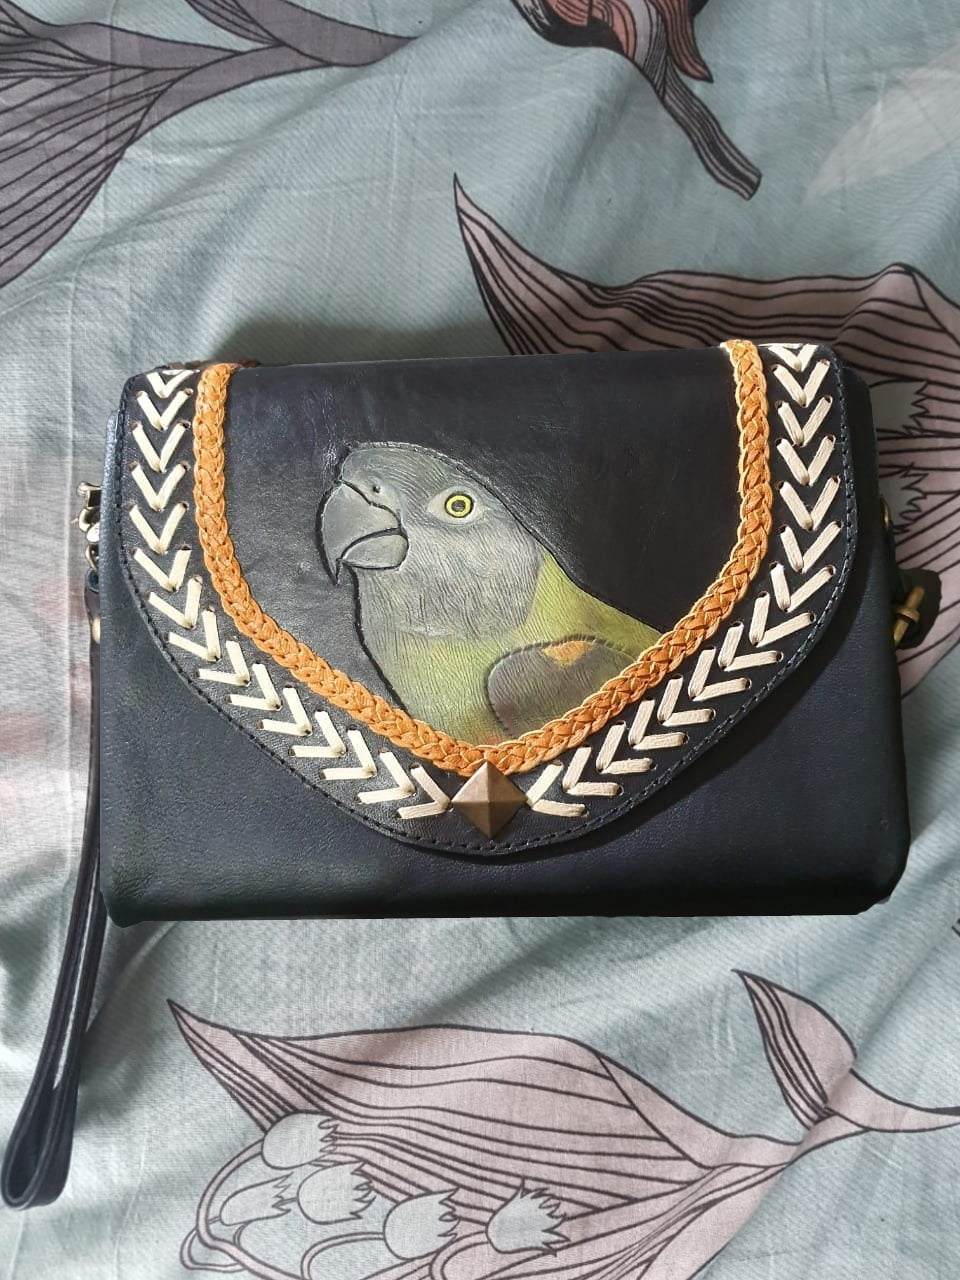 Senegal parrot hand-tooled hand-painted leather clutch purse wallet in black